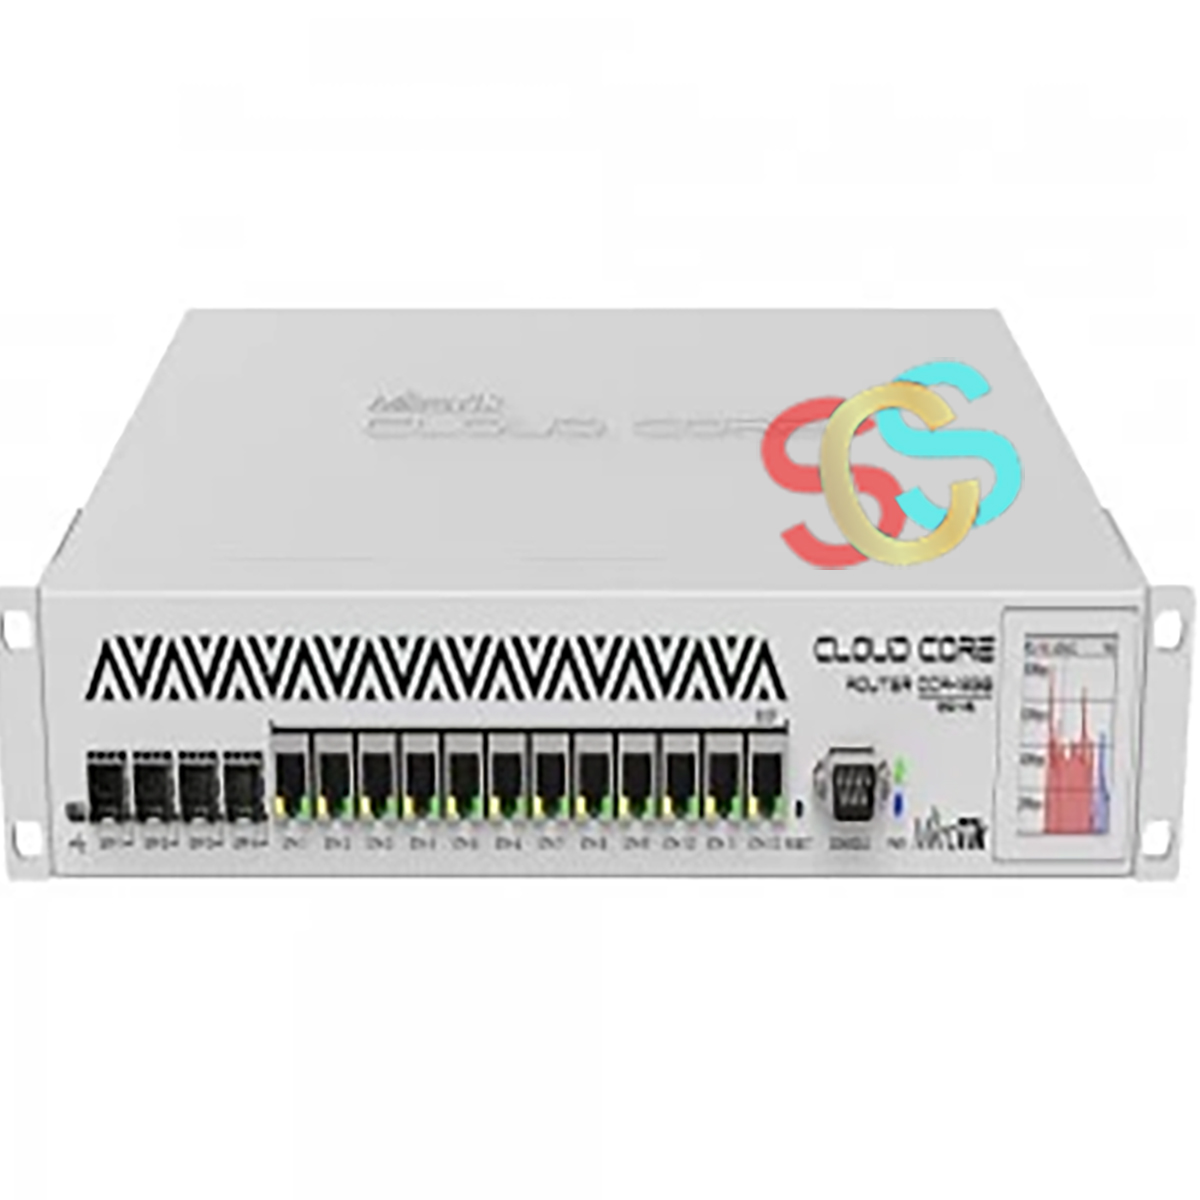 Mikrotik CCR1036-12G-4S Gx36 CPU (36-cores, 1.2GHz per core), Two SODIMM DDR3 slots, 2x2GB DDR3 10600 modules installed, 12 Gigabit, 4 1.25G Ethernet SFP cage (Mini-GBIC; SEP module not included), 1GB Onboard NAND, Mikro Tik RouterOS v6 (64bit) Level 6 license Network Router